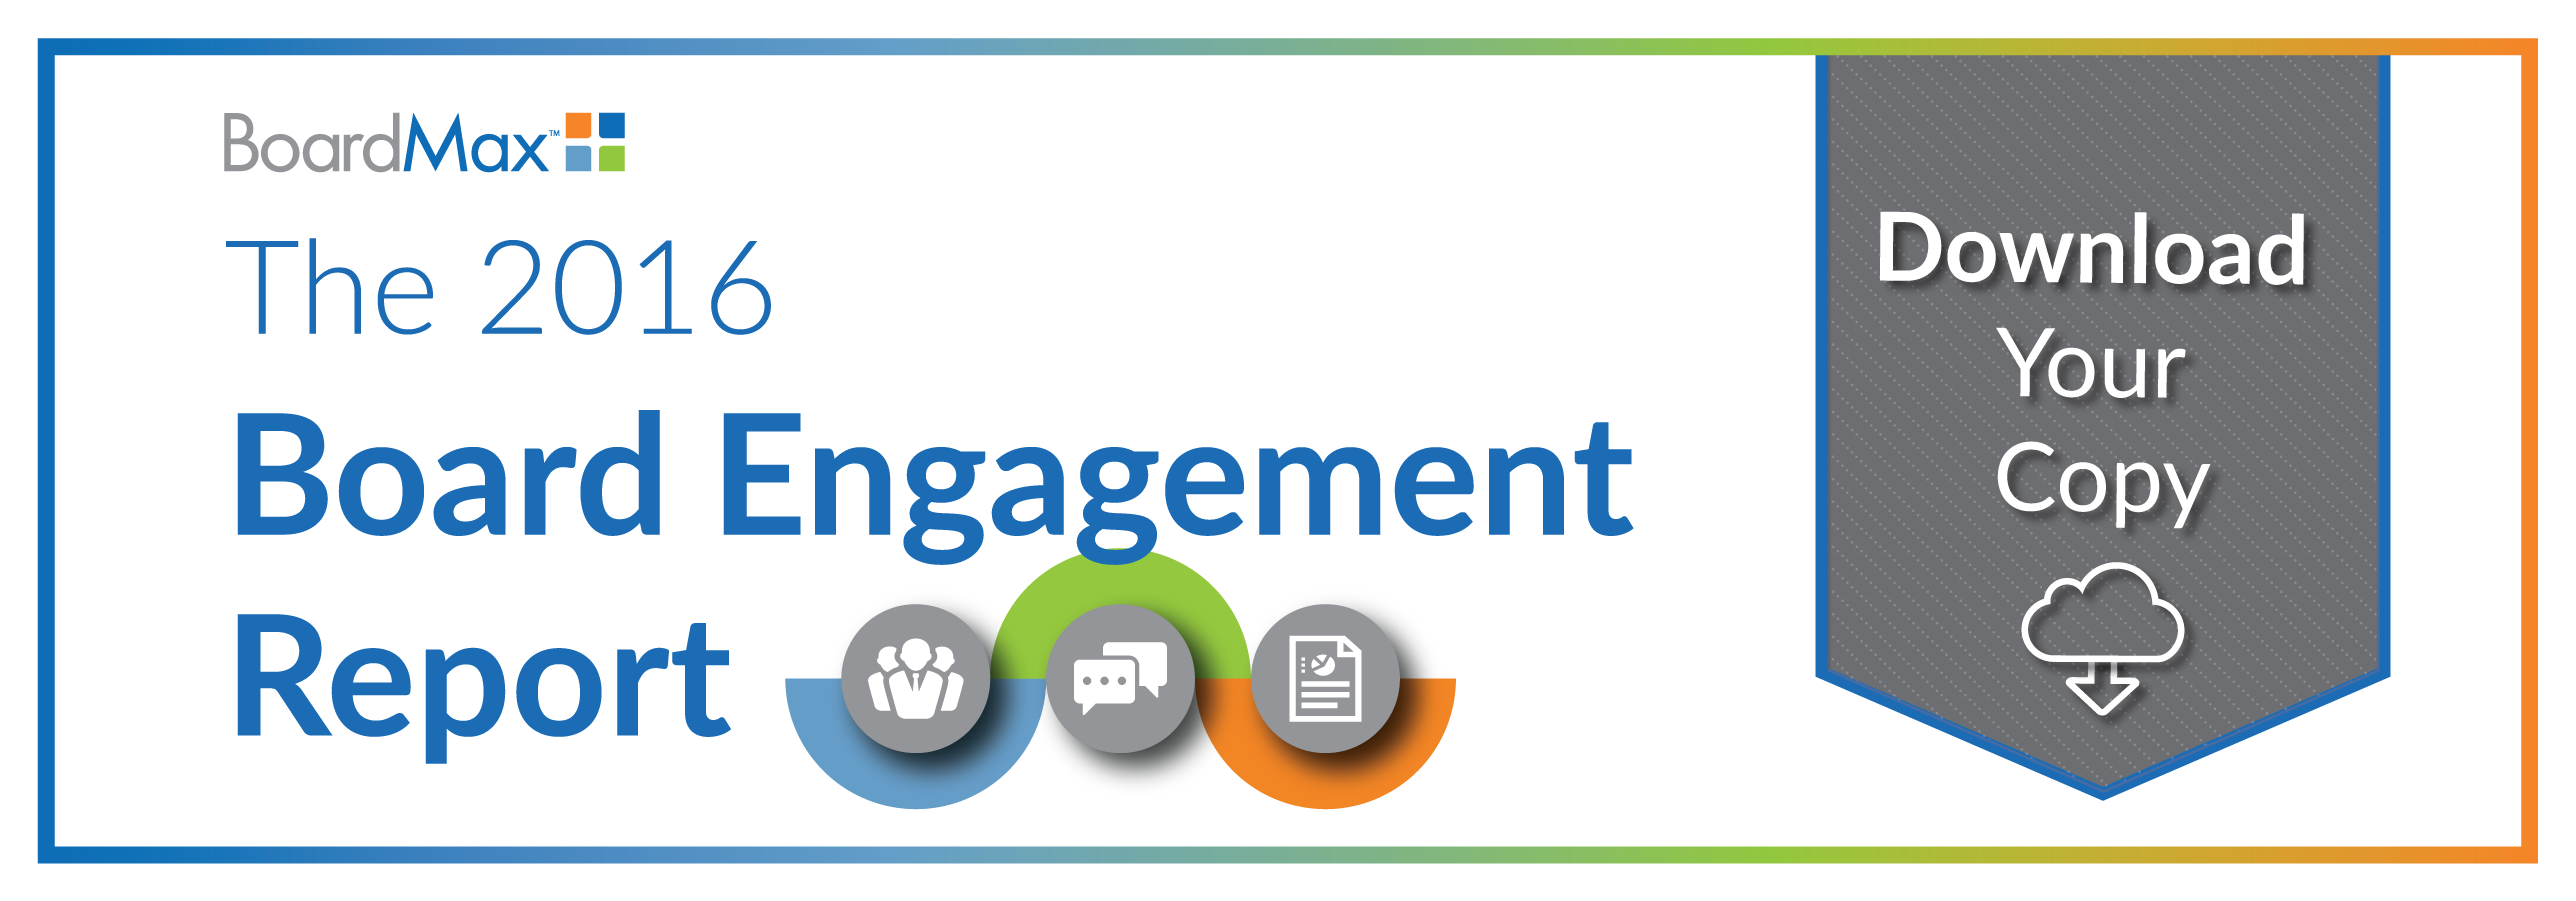 [Free Report] What's the Current State of Board Engagement?